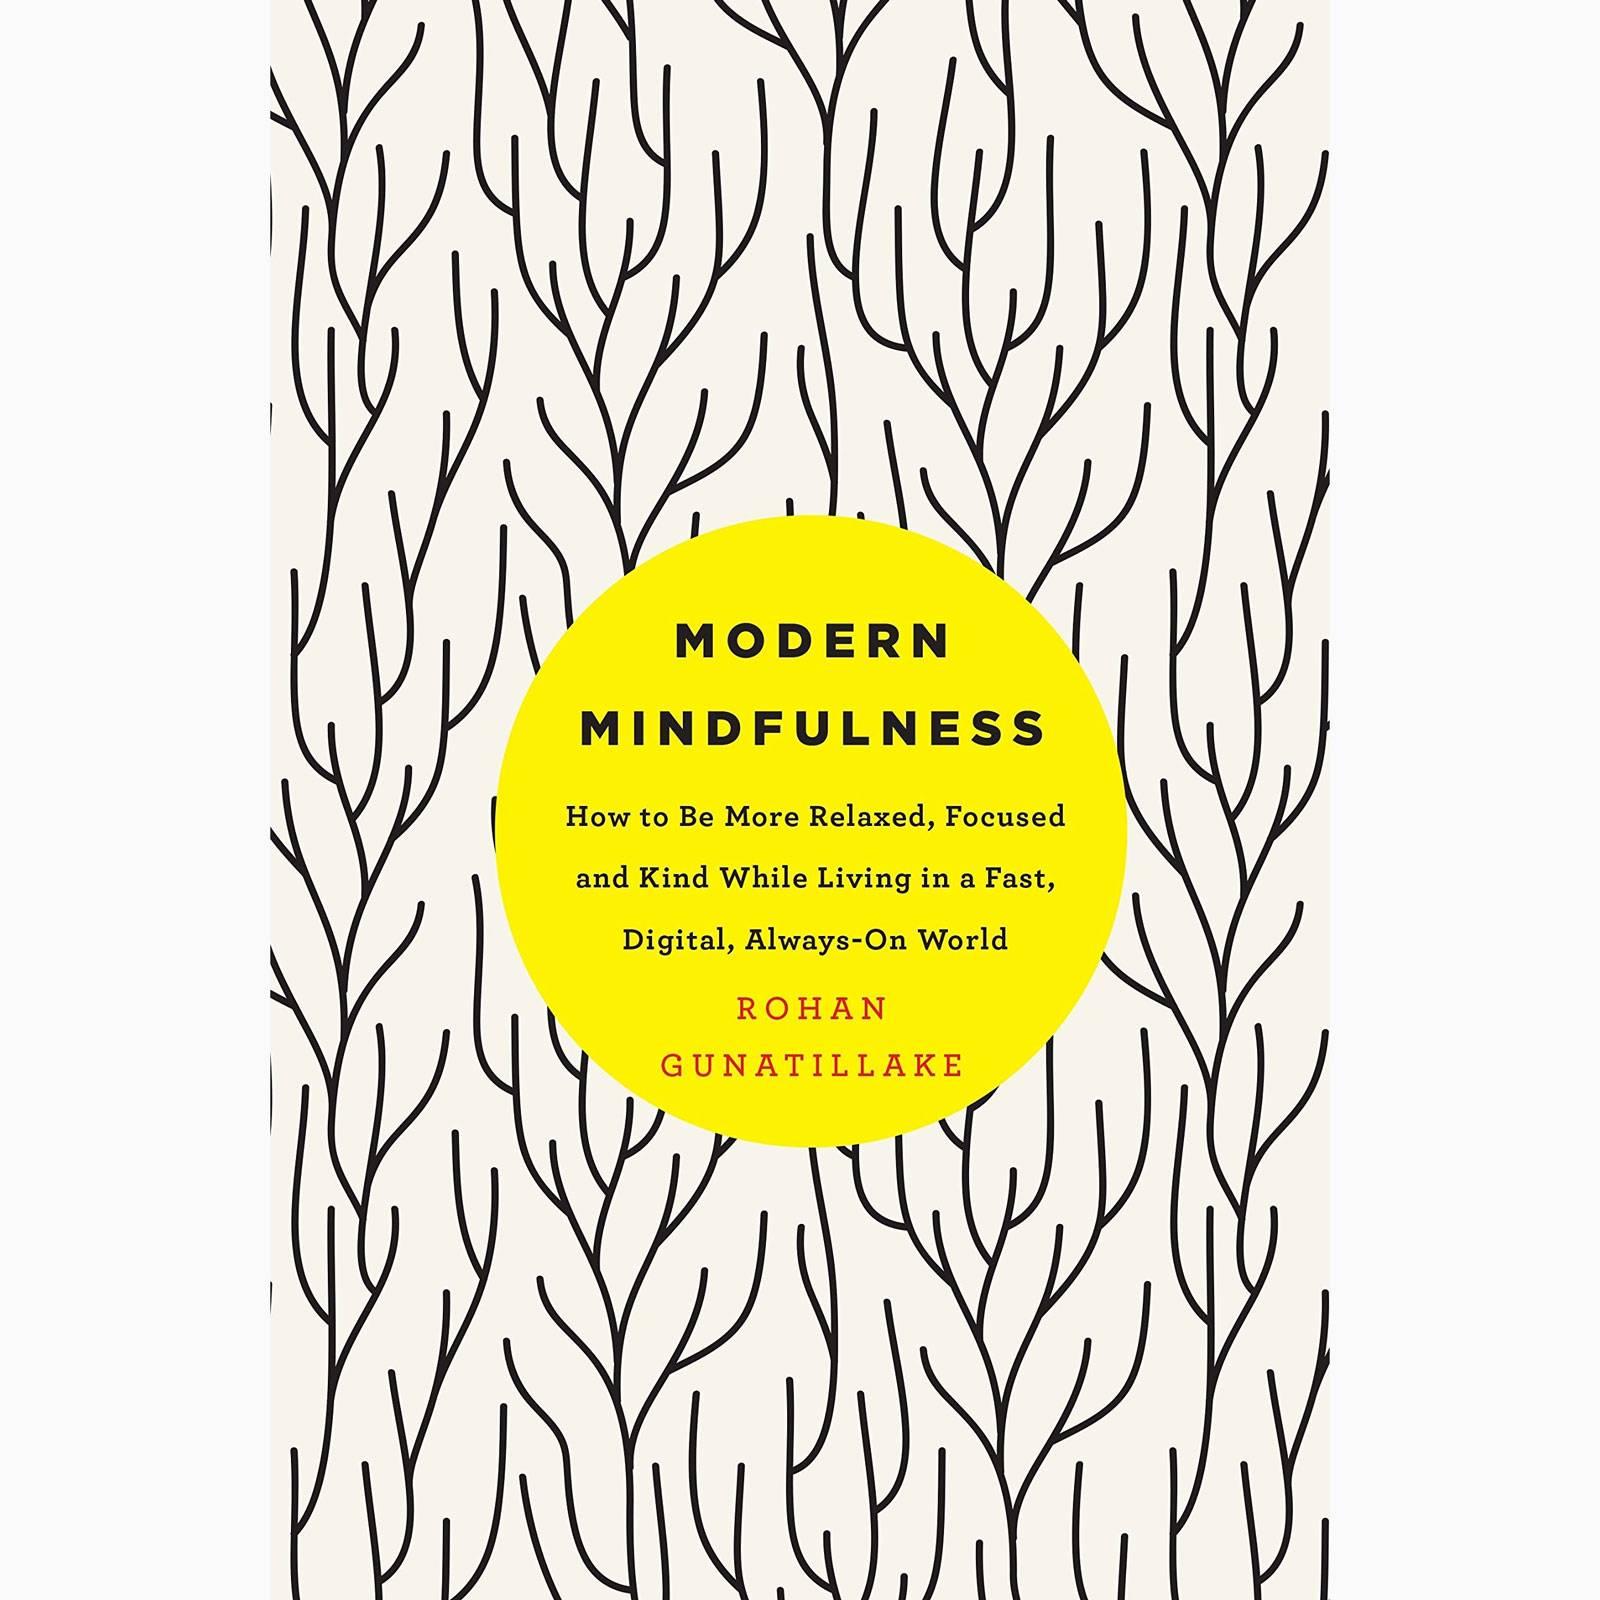 Modern Mindfulness - Paperback Book thumbnails